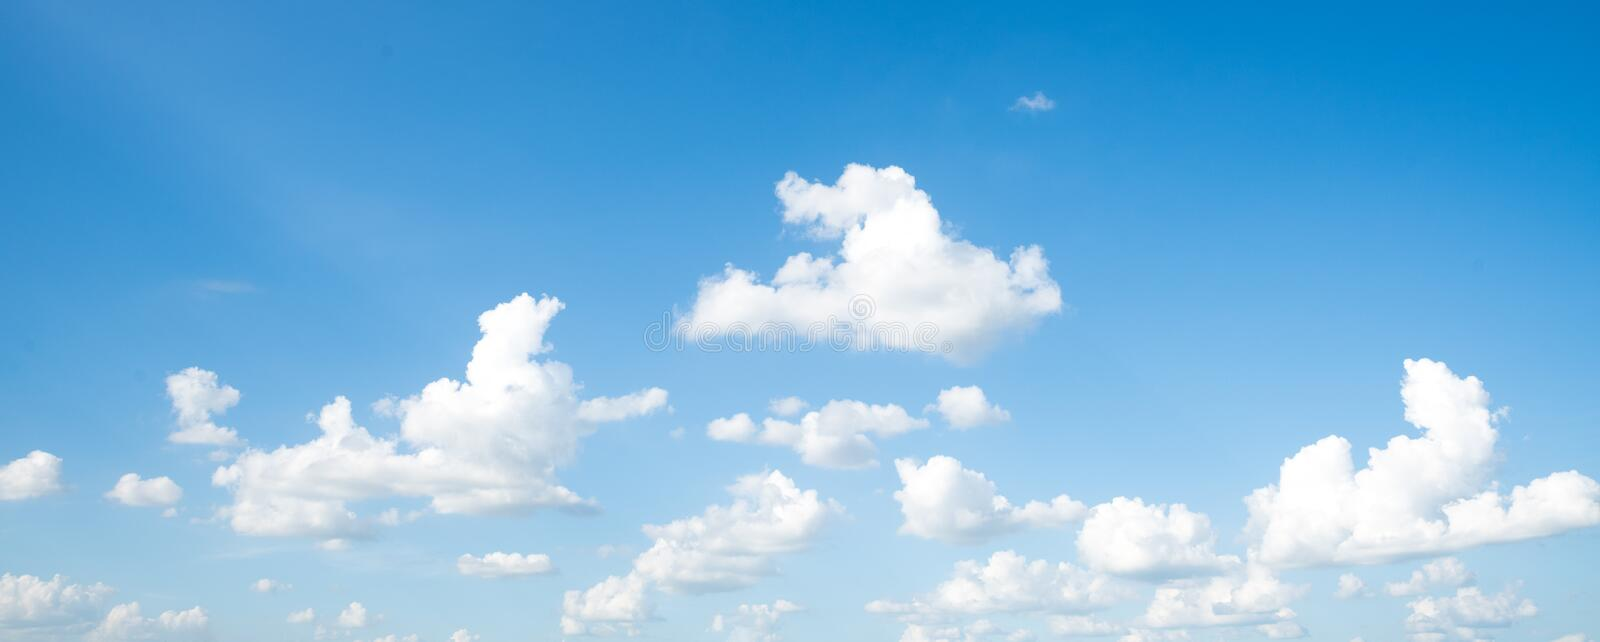 Panorama of clear blue sky with white cloud background royalty free stock photography